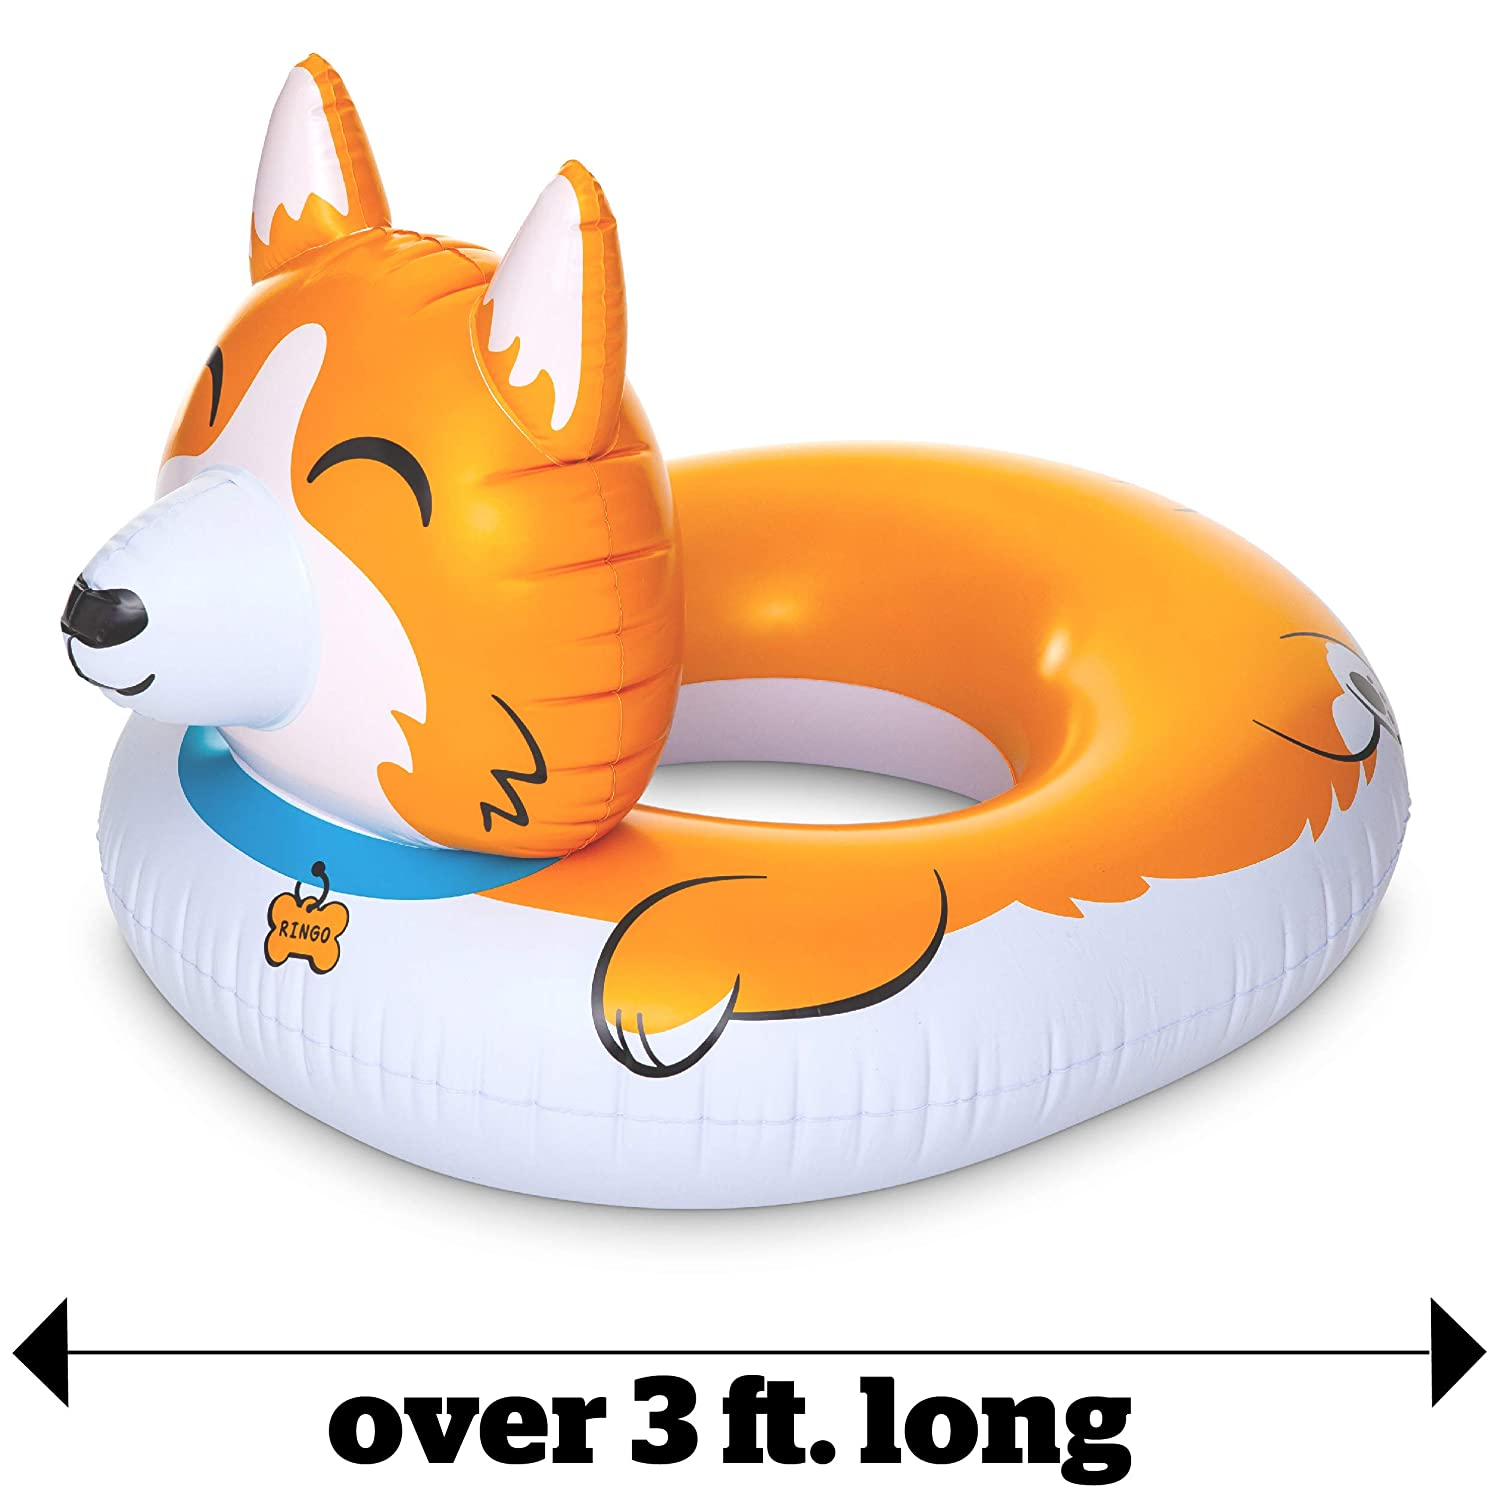 Corgi Pool Float. Come discover 22 Random Lovely Finds & Smiles to Discover...Decidedly Fun Stuff You Never Knew You Wanted.